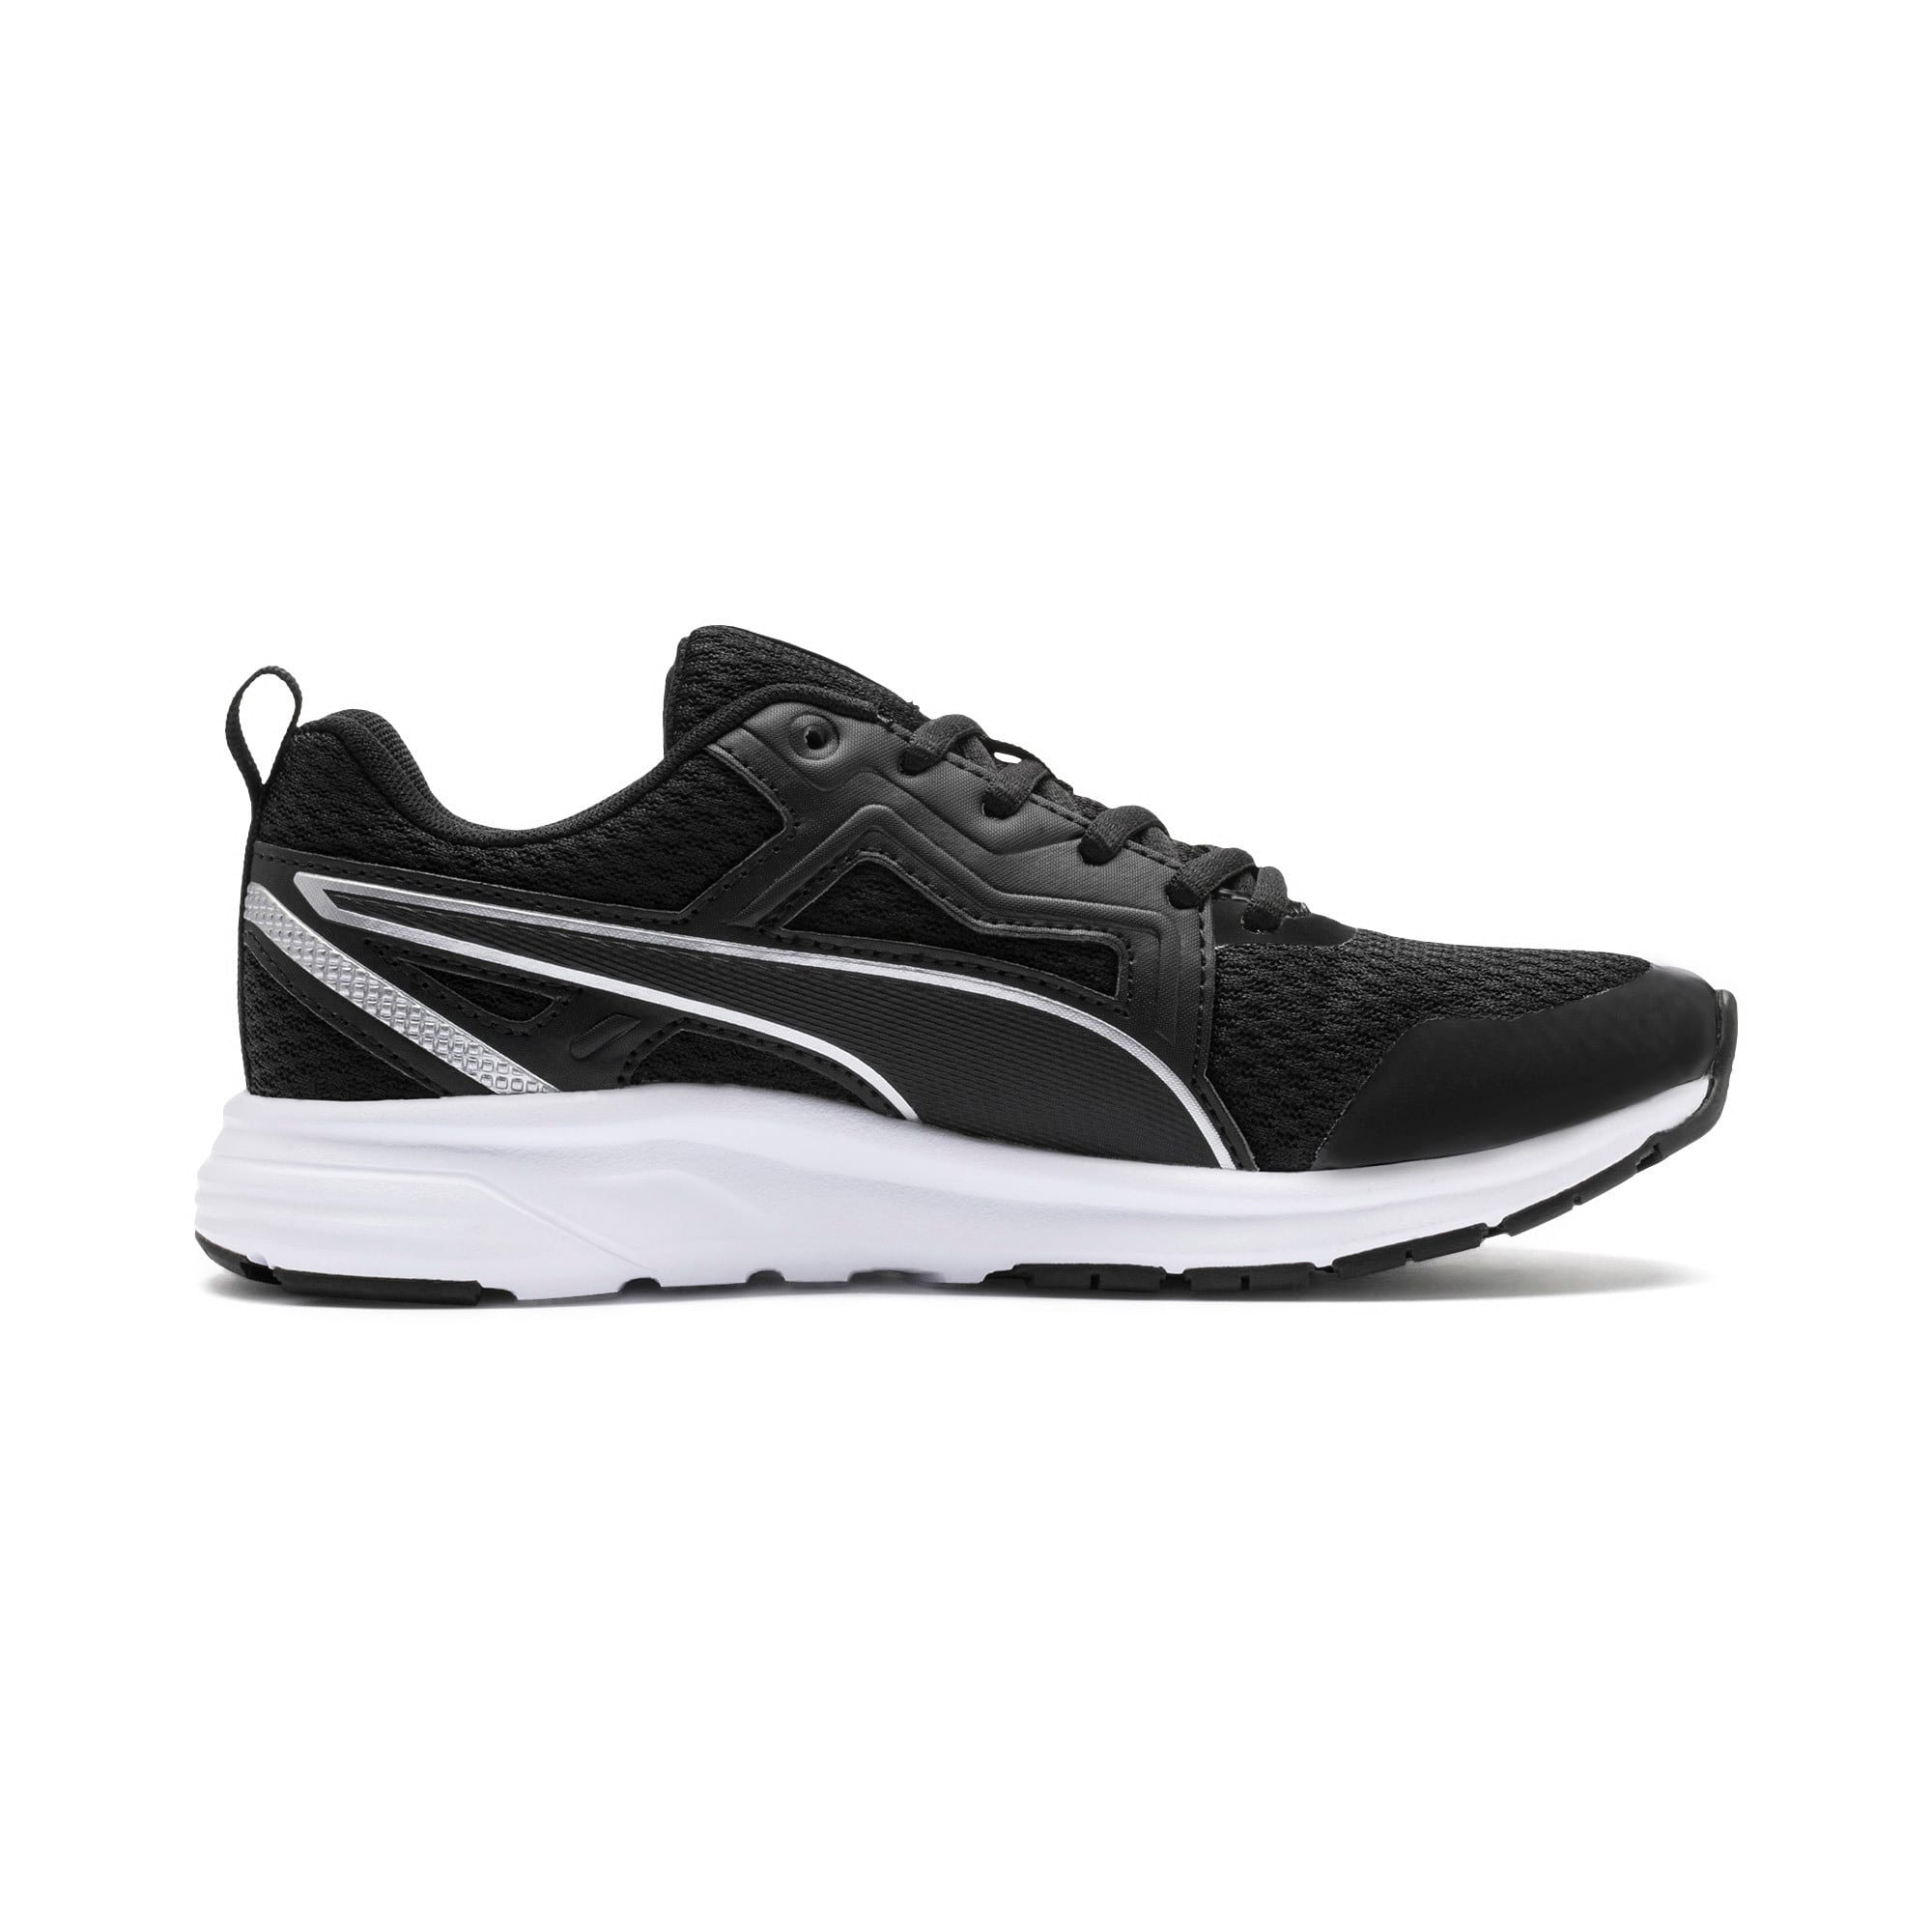 Thumbnail 5 of Pure Jogger Youth Trainers, Black-Silver-Wht-Nrgy Yellow, medium-IND